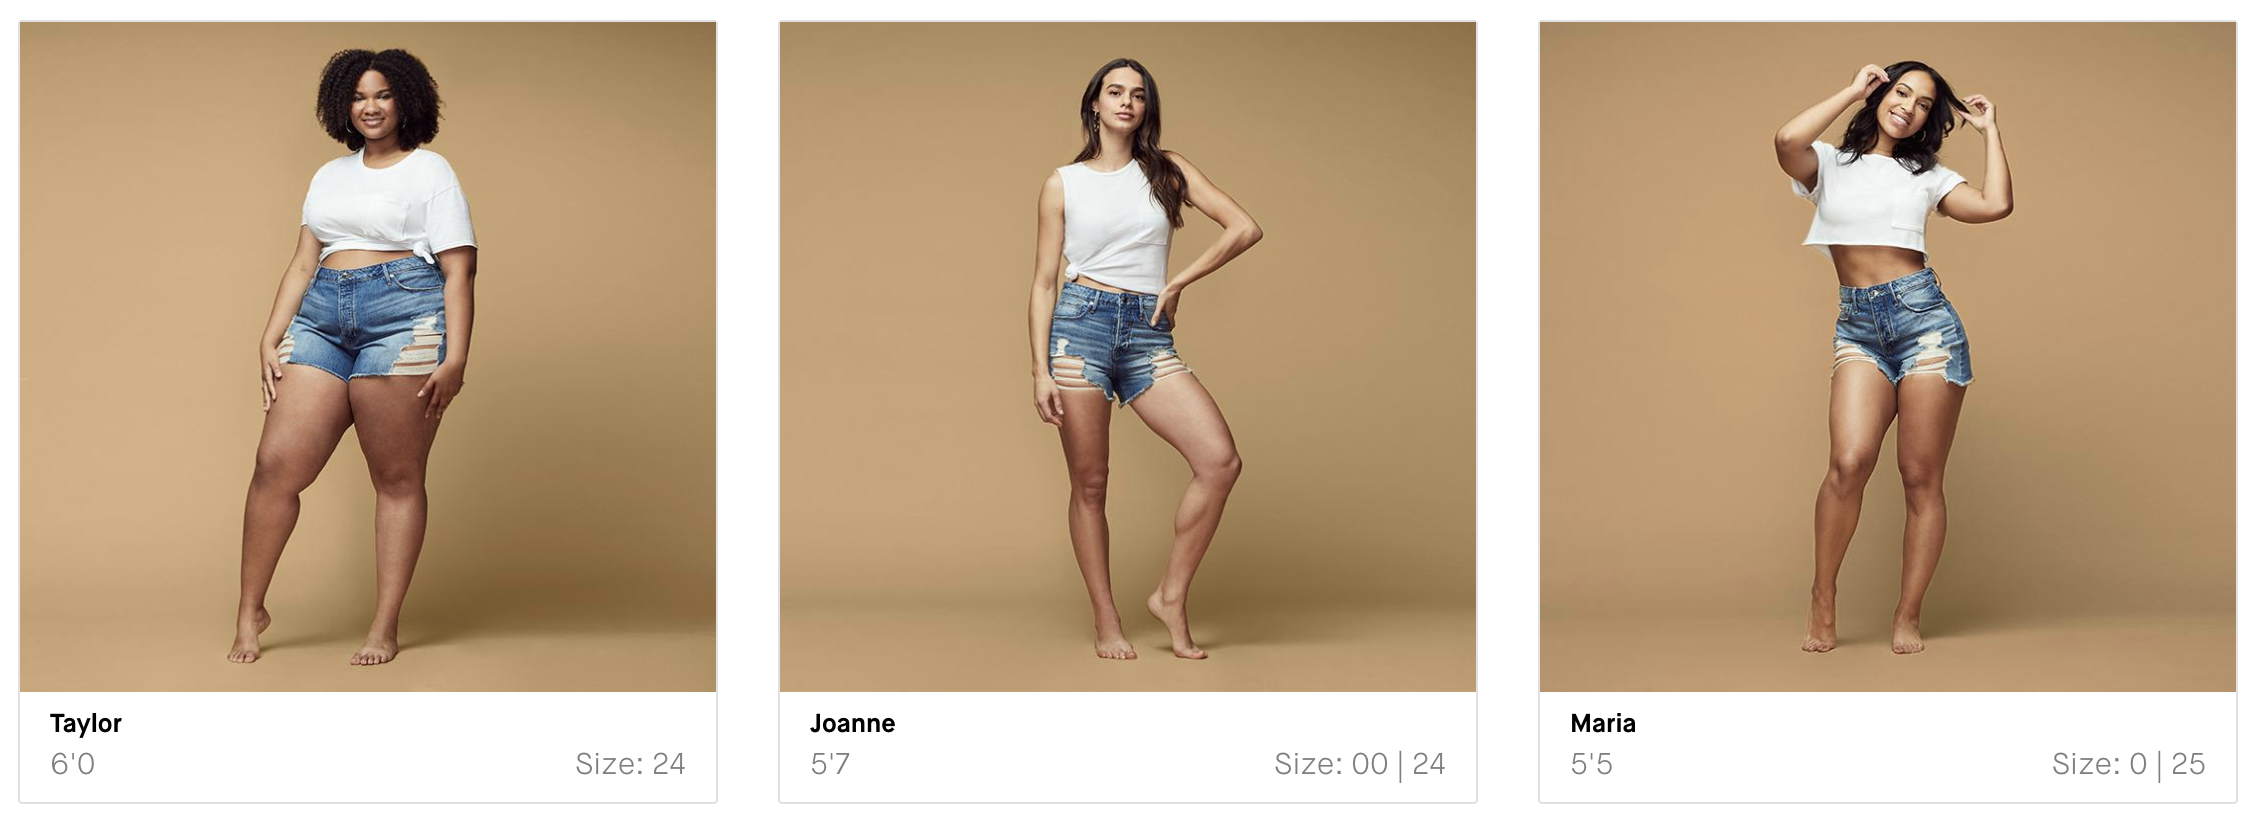 High-rise jean shorts that really flatter curvy women? Good American. These denim shorts are SO GOOD, in so many sizes. Mamas, check these out.